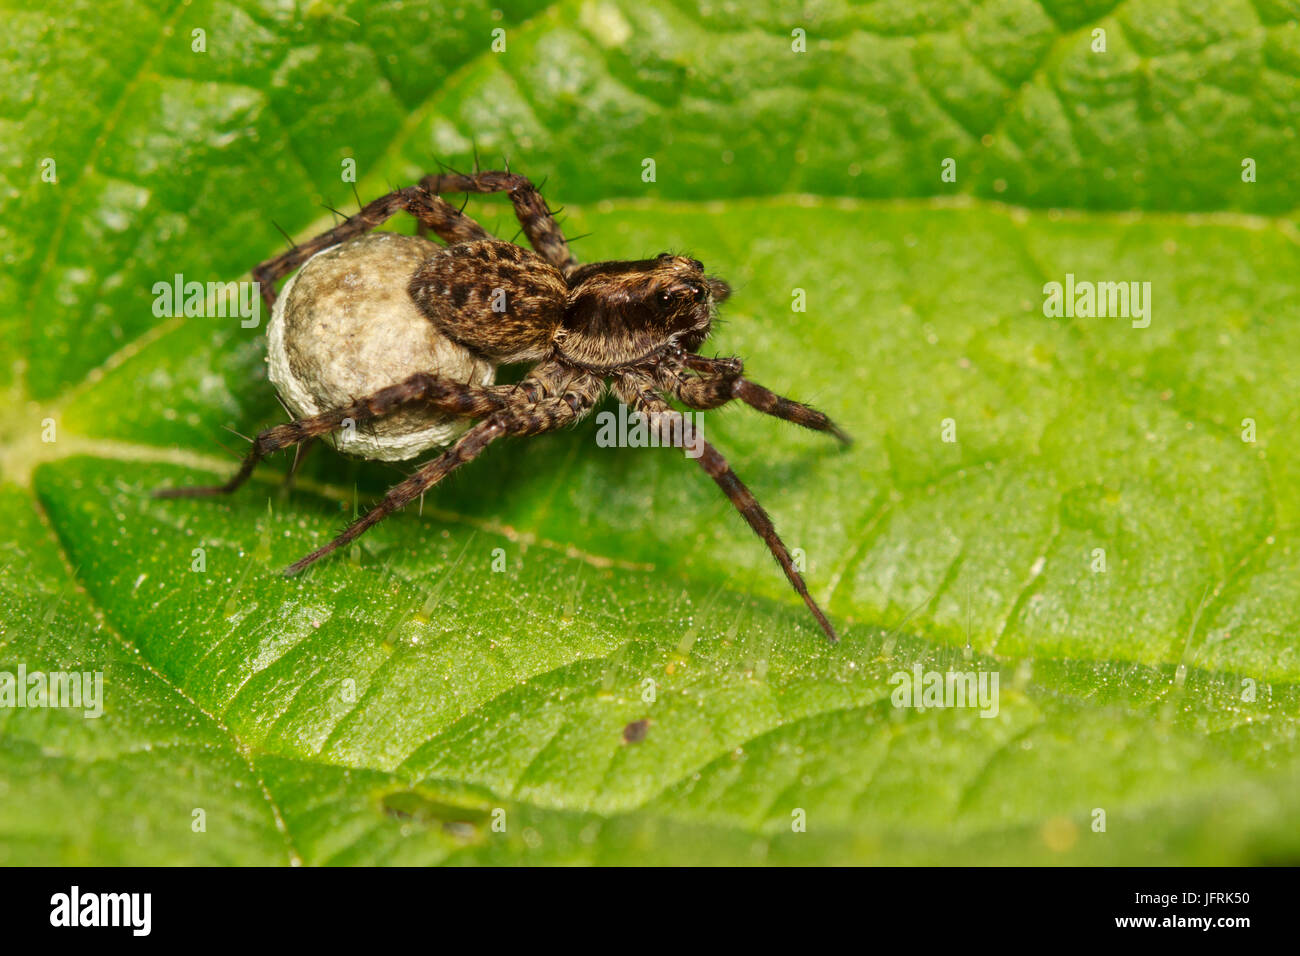 Female spotted wolf spider, Pardosa amentata, carrying her egg sac under her abdomen - Stock Image